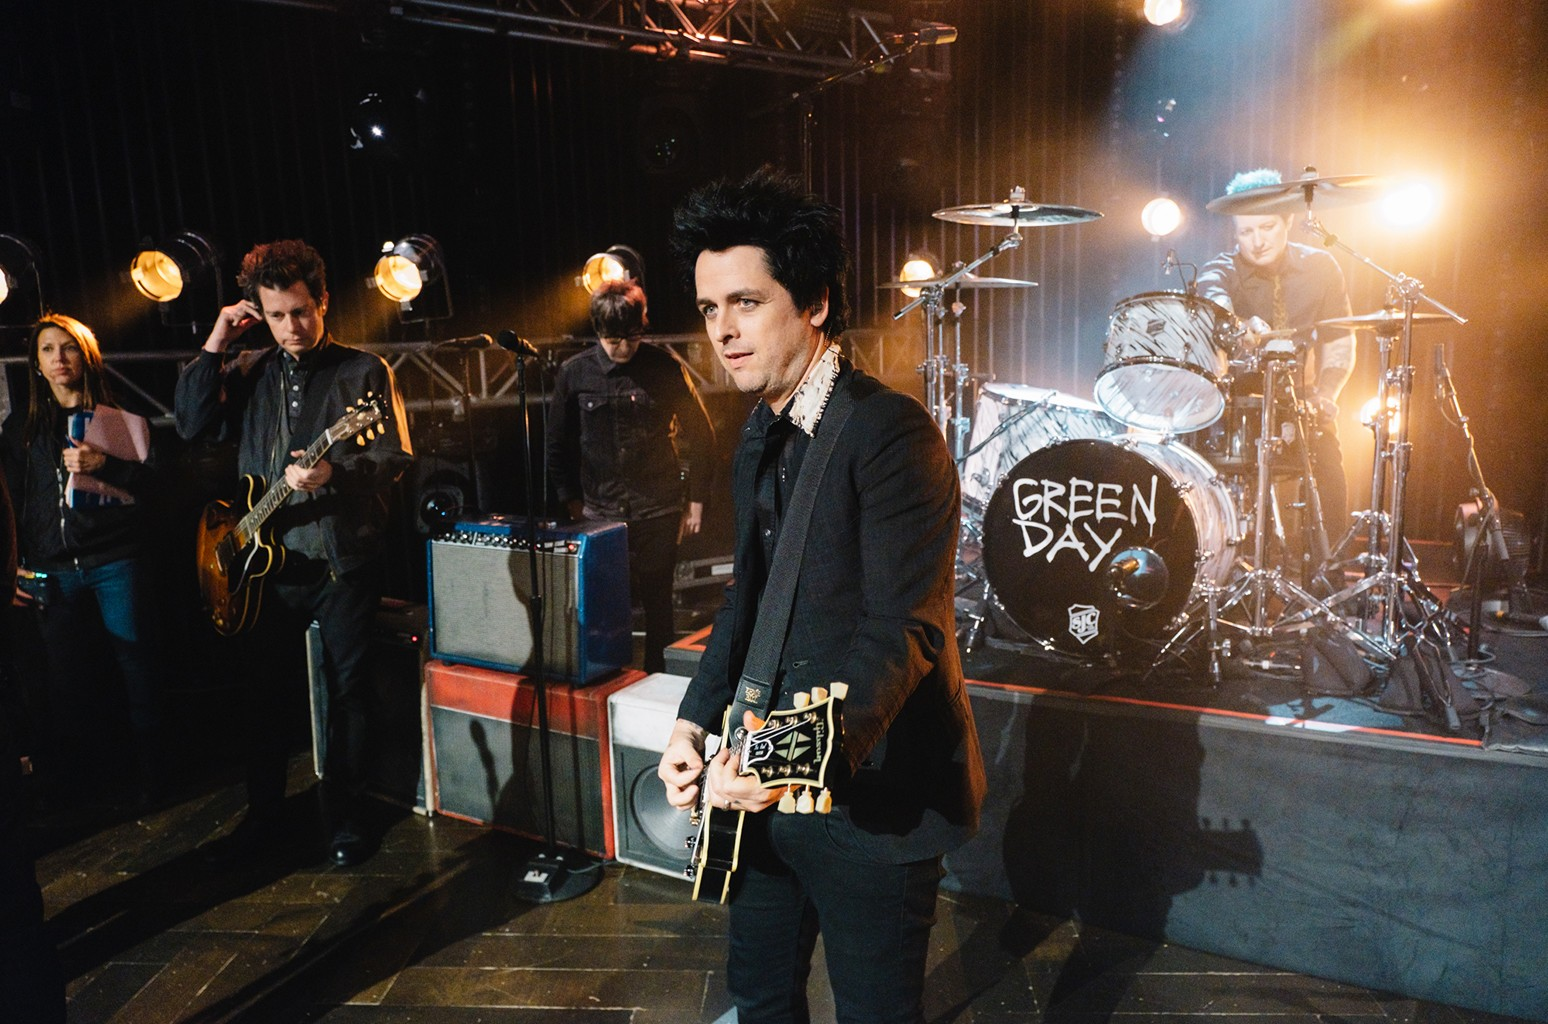 Green Day performs on The Late Late Show with James Corden